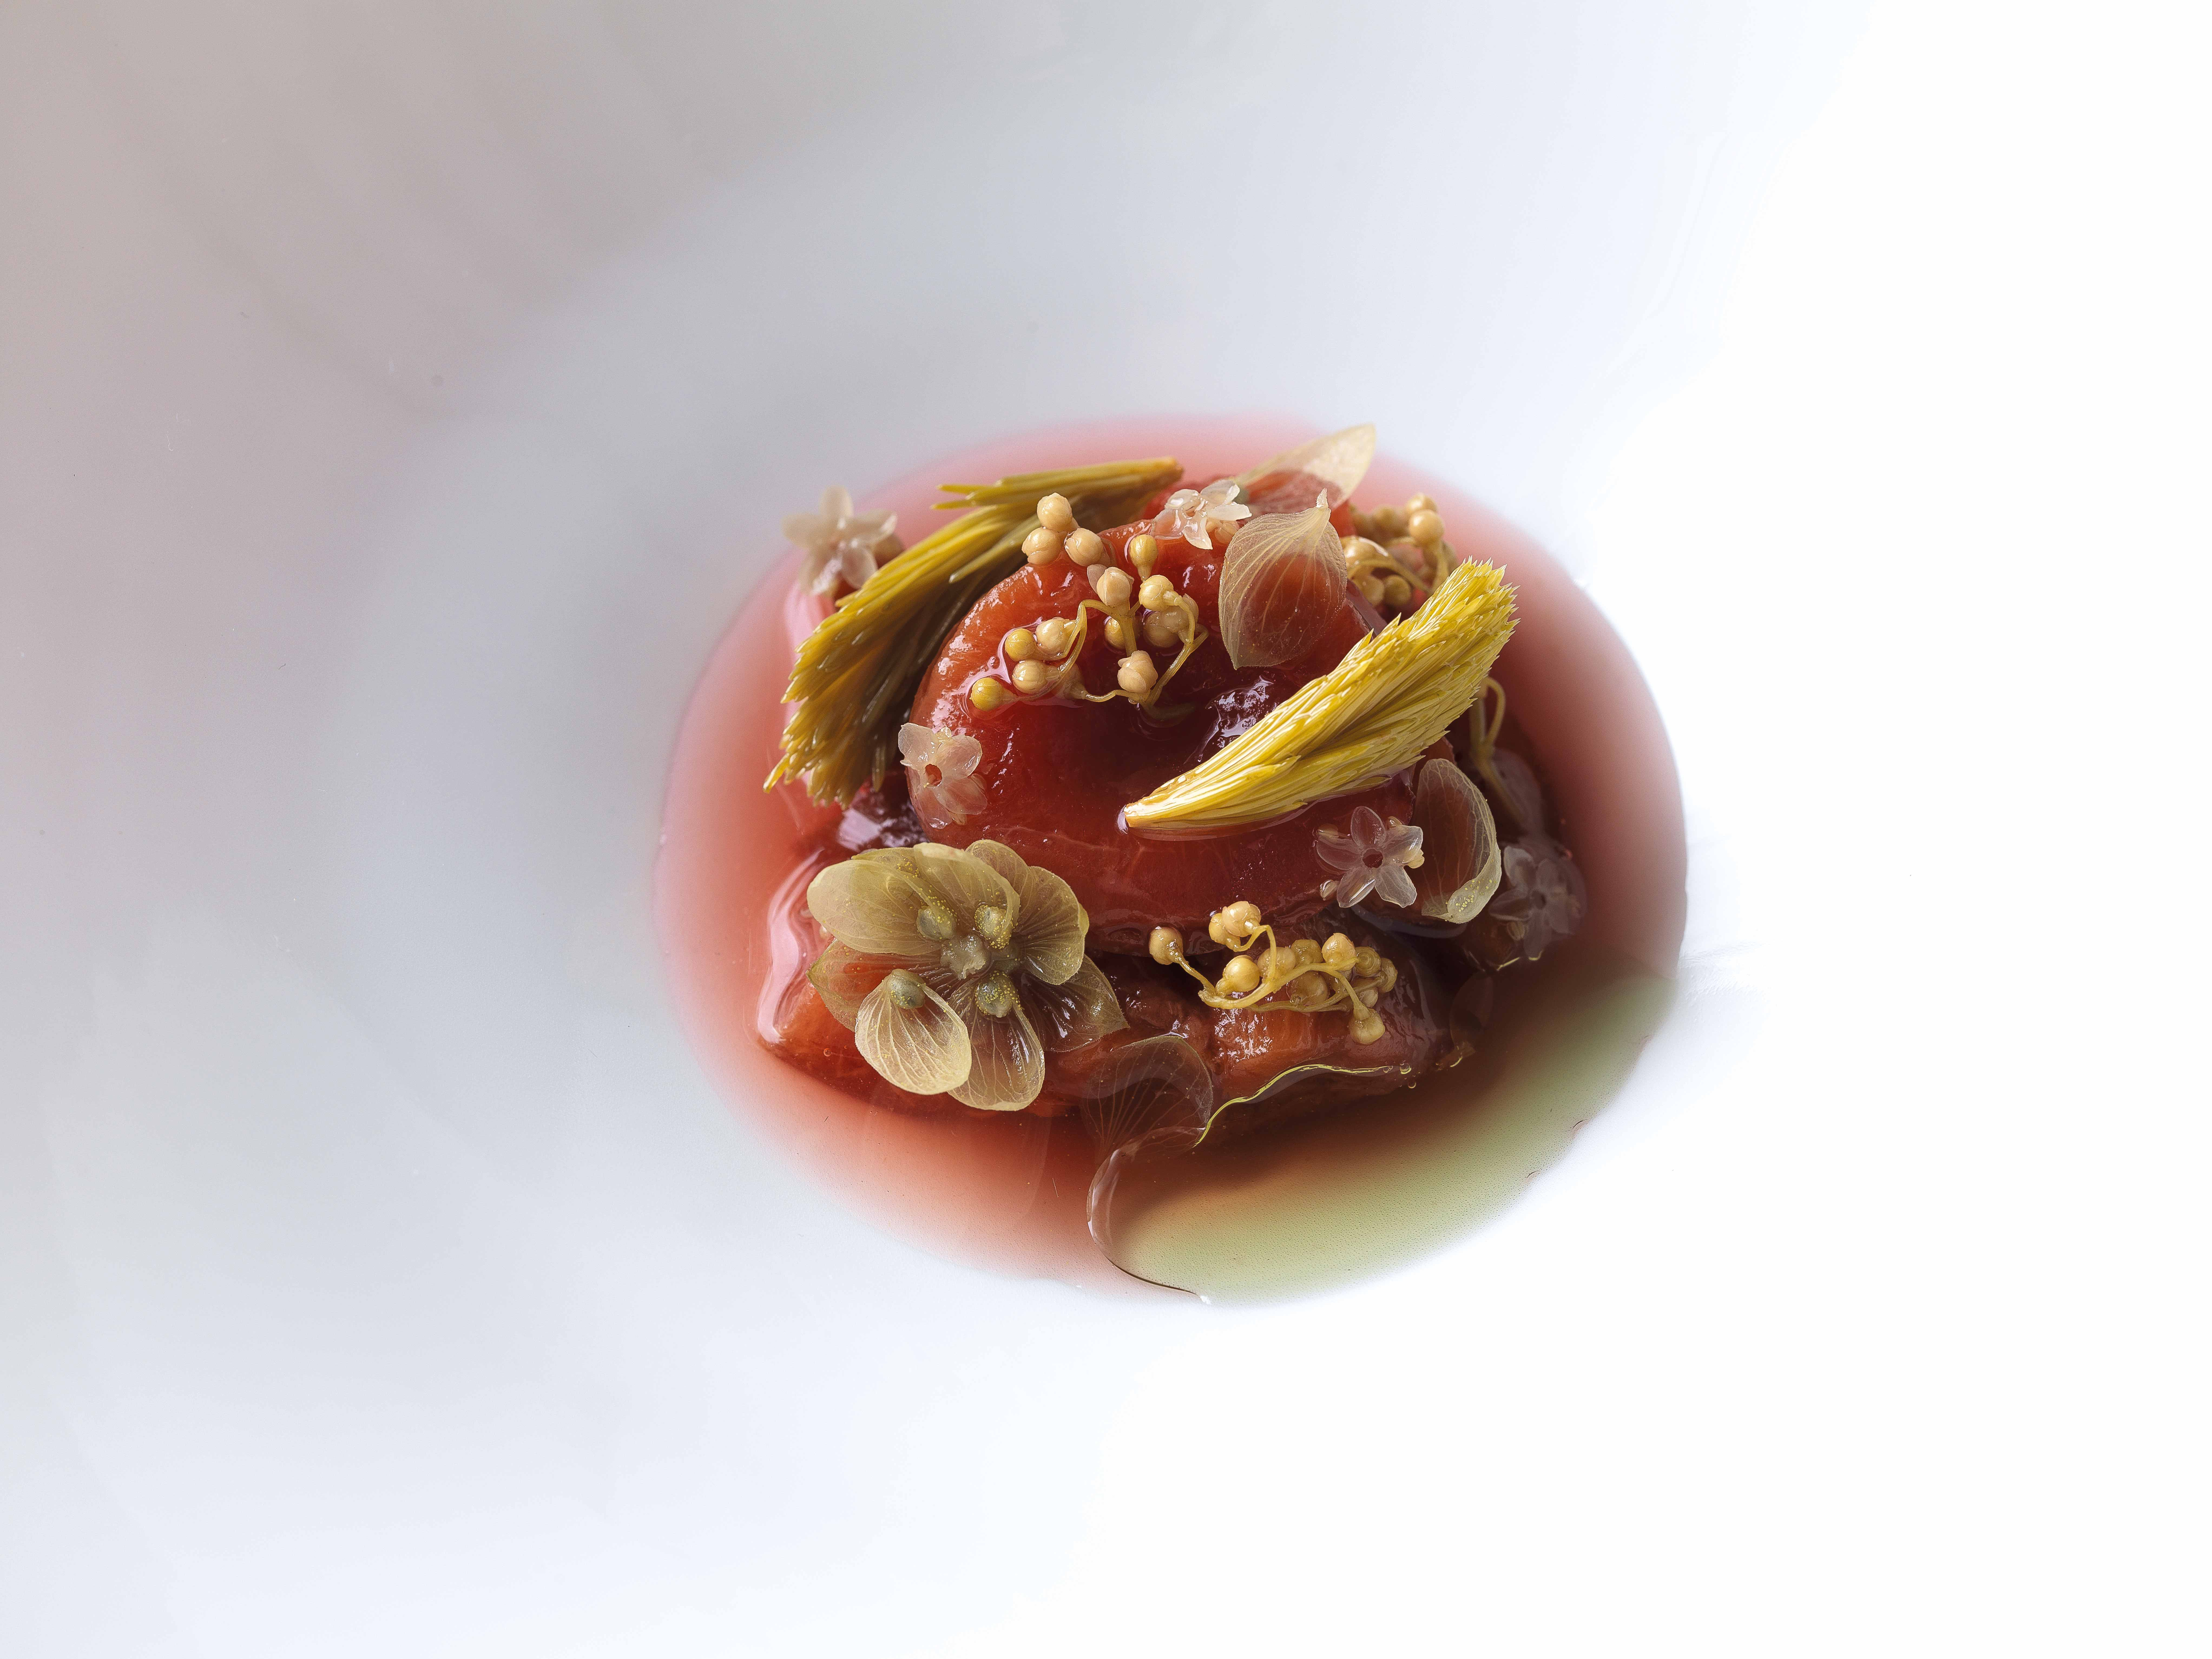 A dish at Eisunternull concoted from plums, hops and elderflower